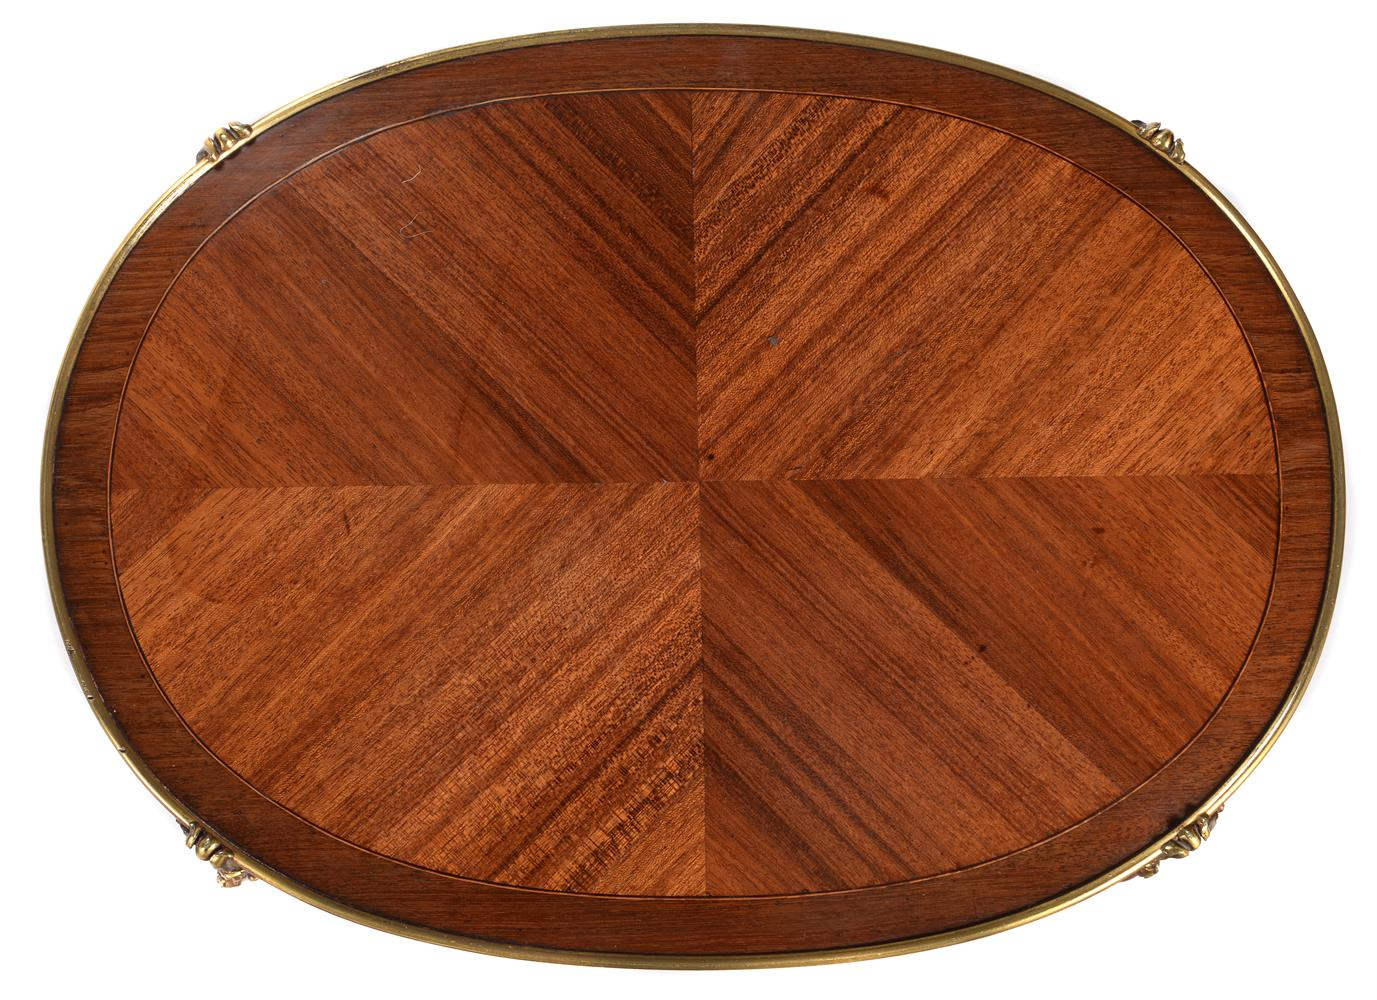 Y A FRENCH MAHOGANY, TULIPWOOD AND ORMOLU MOUNTED TWO TIER OCCASIONAL TABLE, BY GERVAIS DURAND - Image 2 of 4